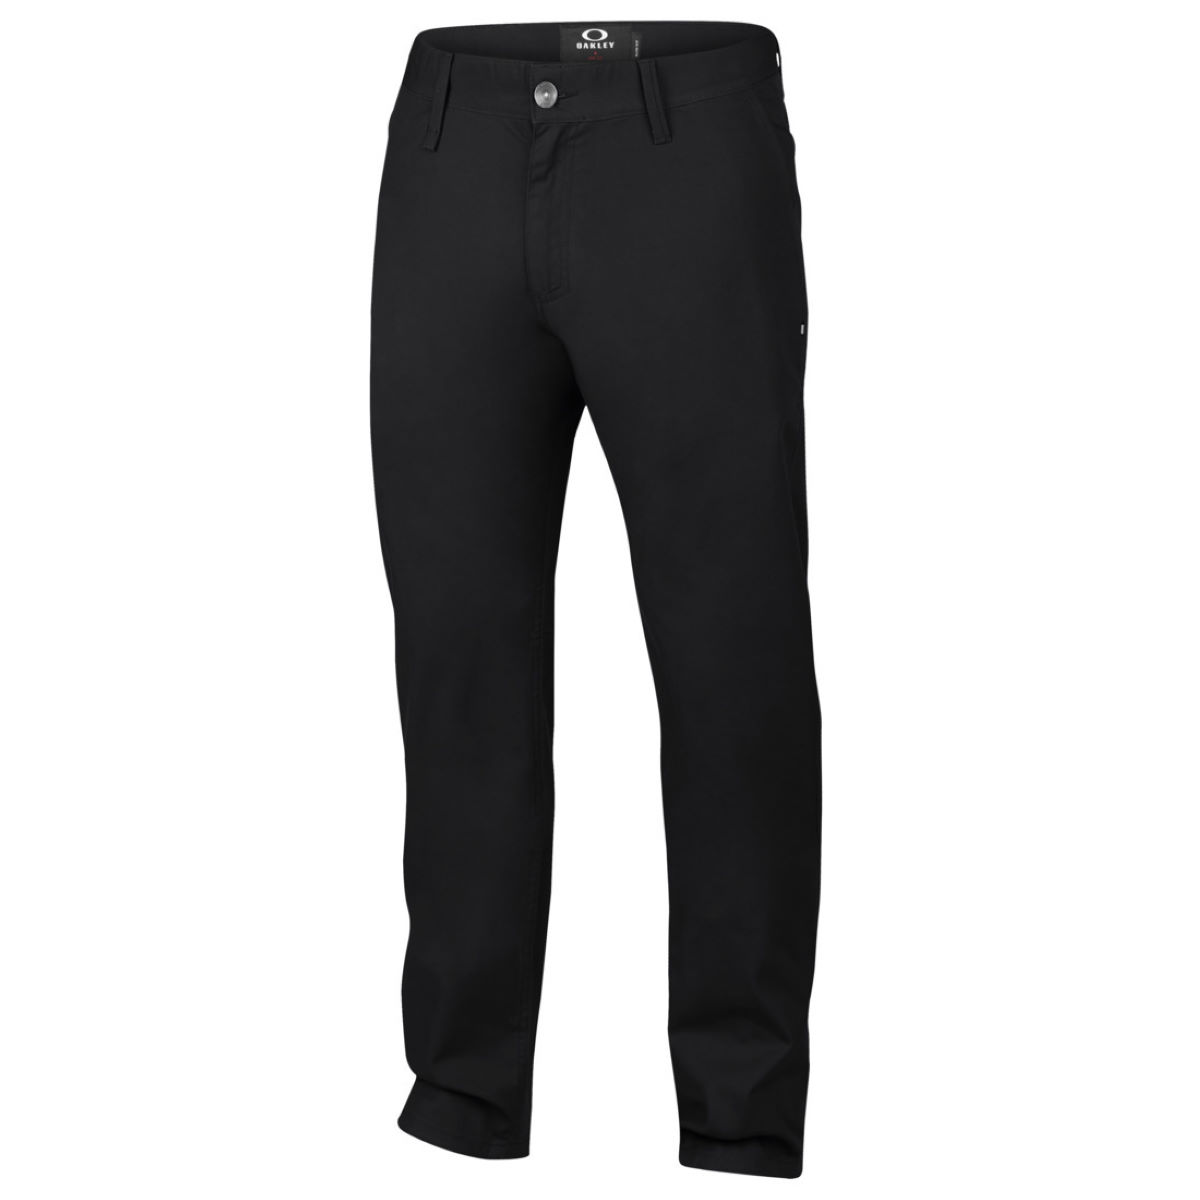 Oakley Sims Chino - Small Black/Black | Casual Pants